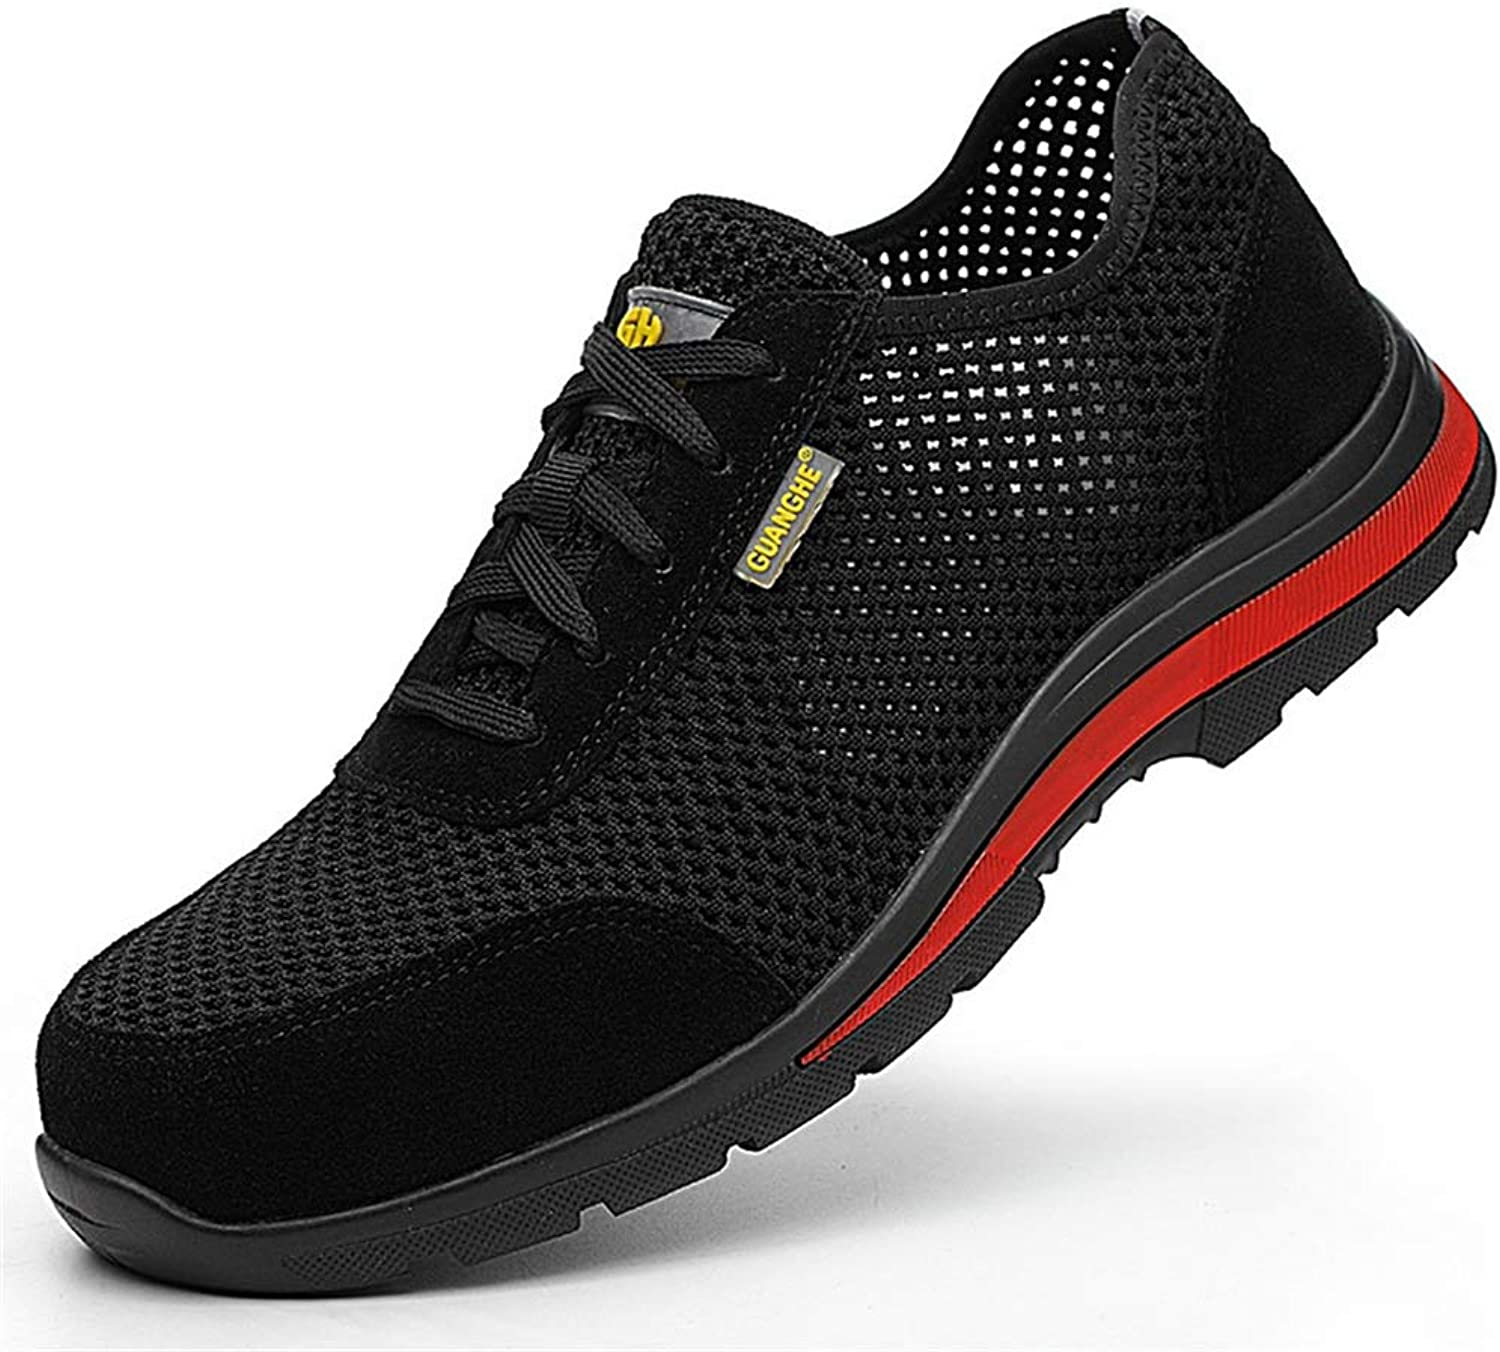 Qiusa Mens Safety shoes Hollow out Breathable Non Slip Composite Steeel Toe shoes (color   Black, Size   UK 8)